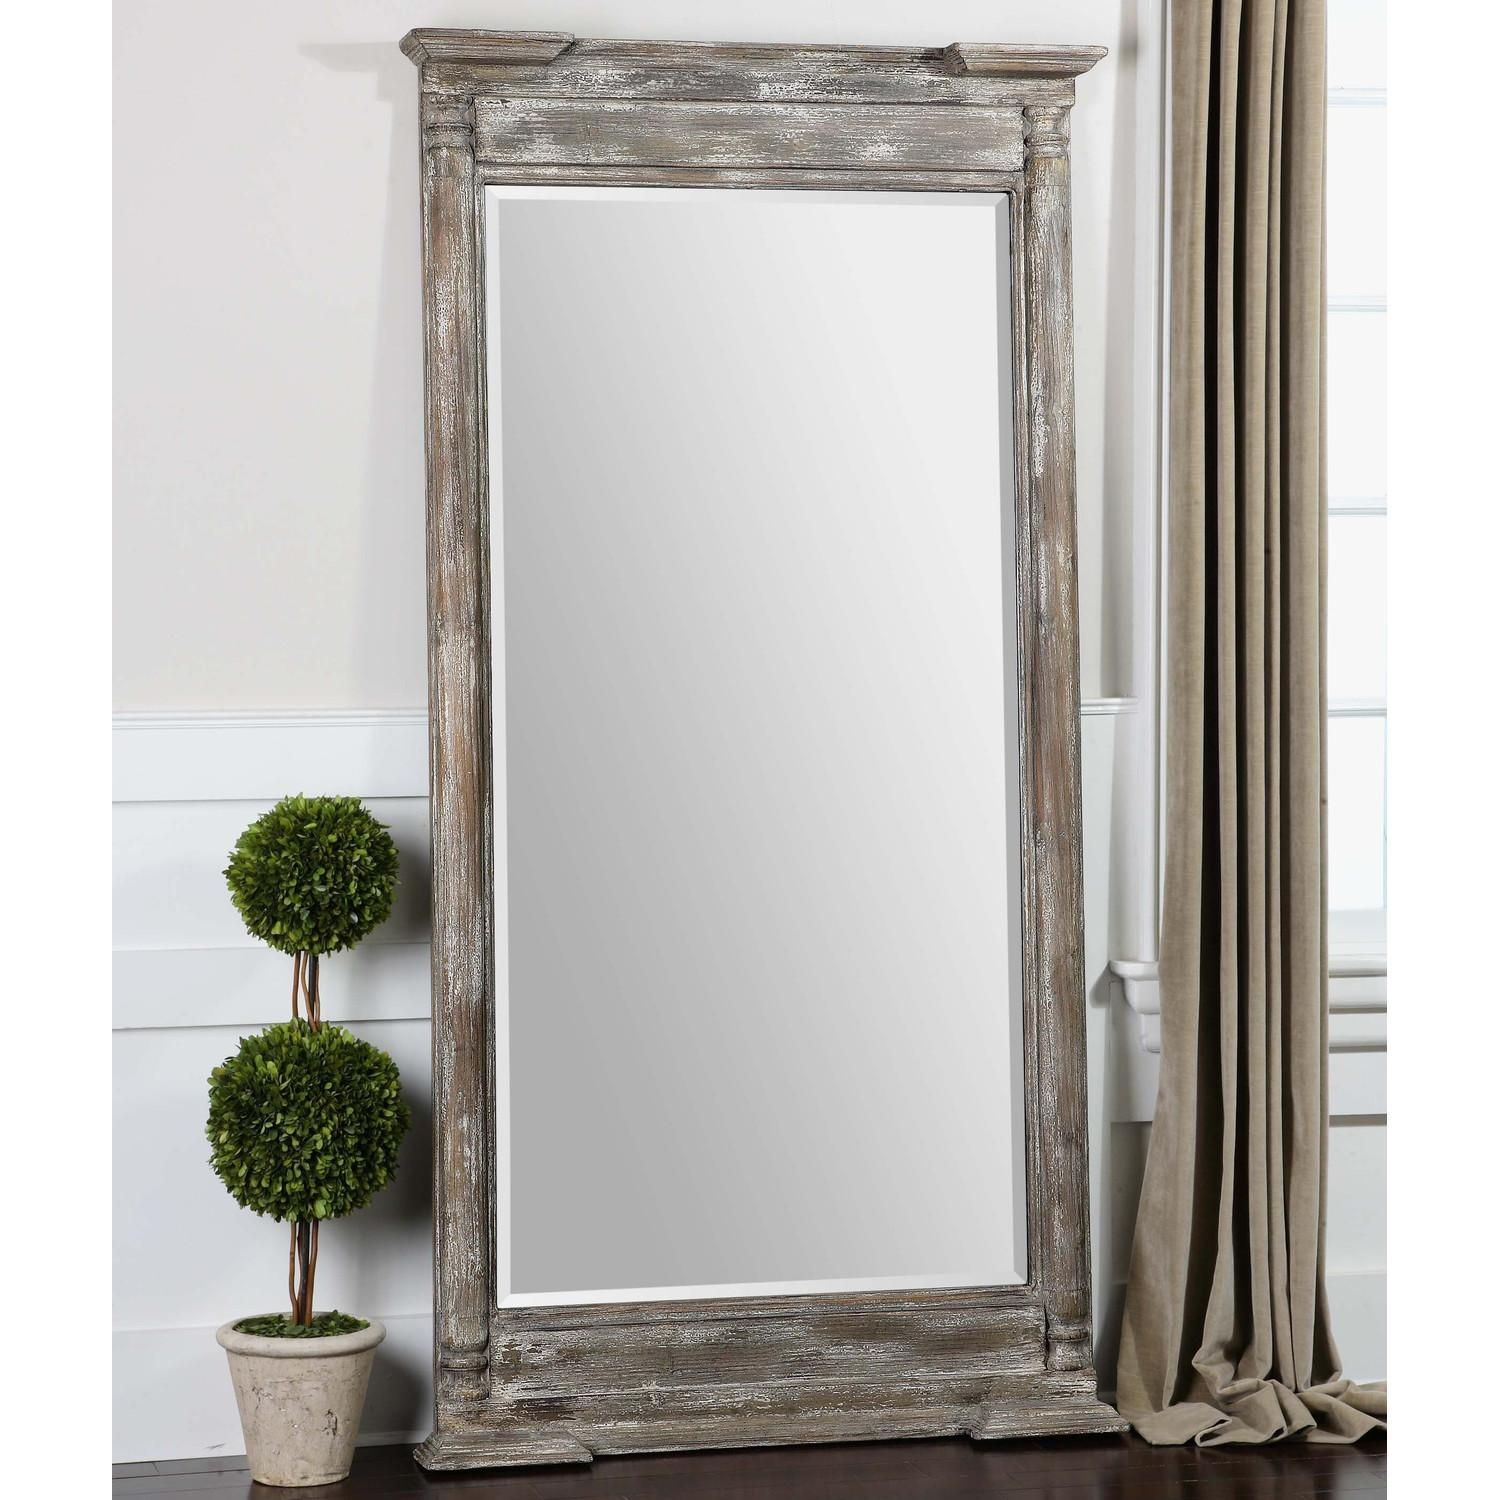 Decorative Floor Mirrors Cheap | Floor Decoration Pertaining To Ornate Floor Length Mirror (Image 6 of 20)